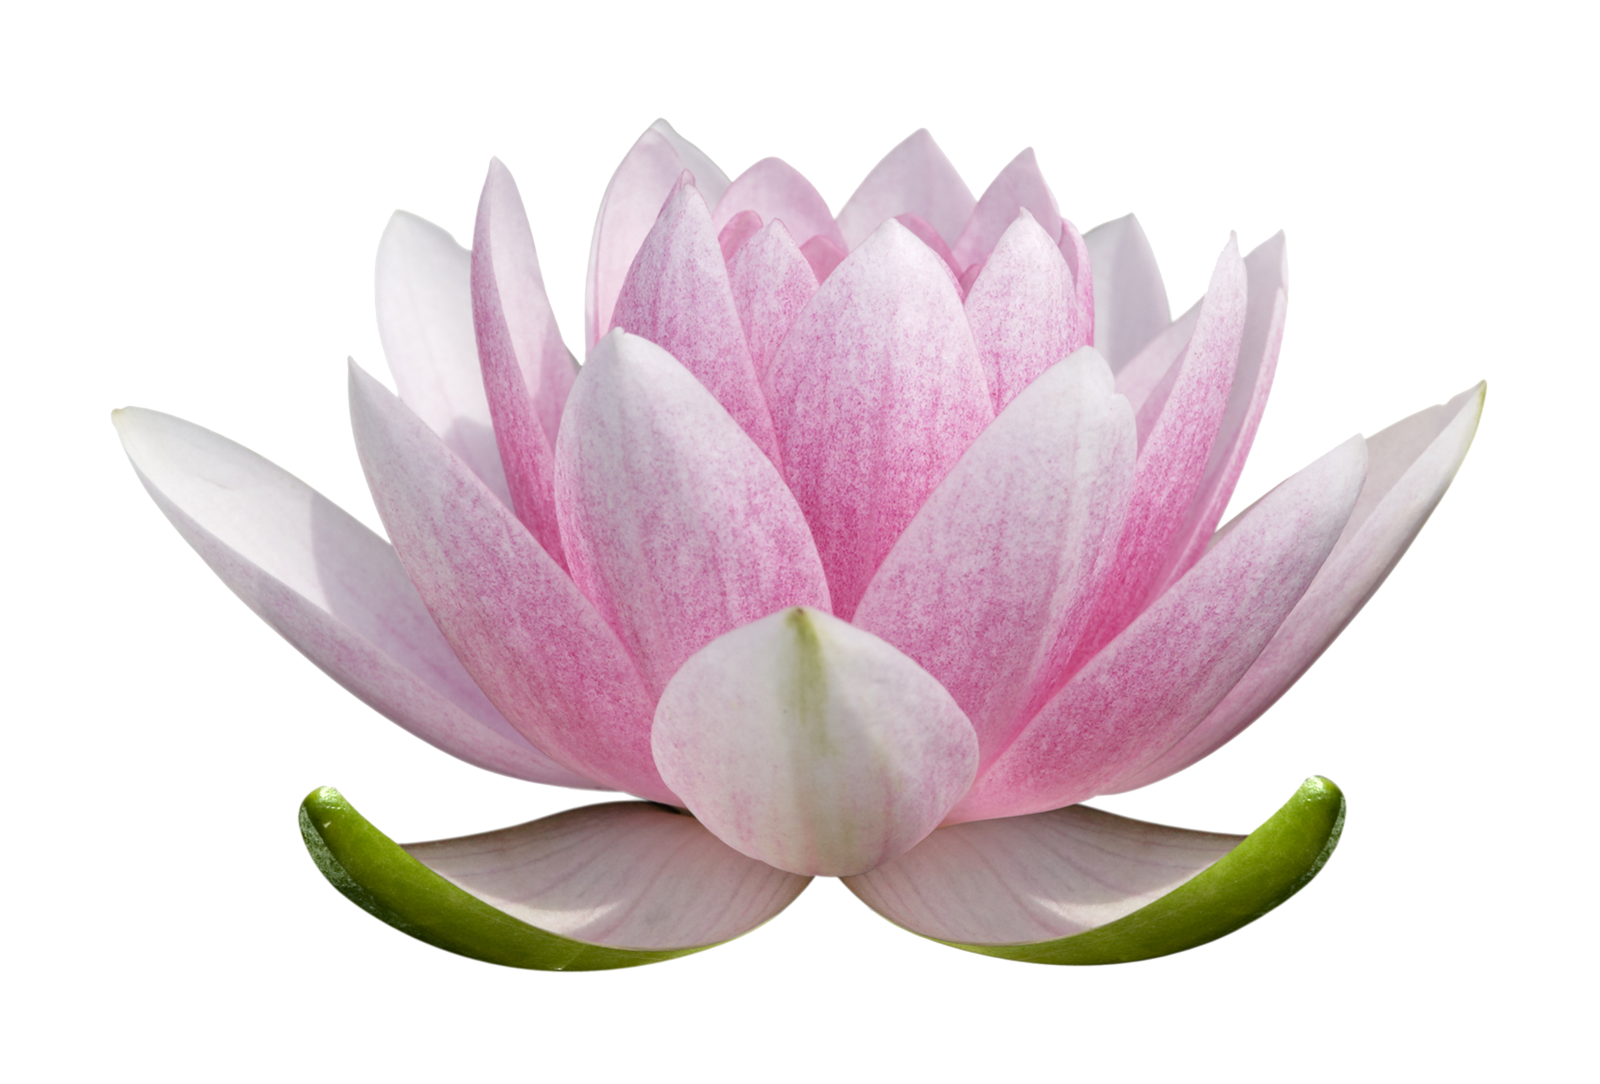 Lotus flower png images free download lotus flower png free png lotus for logo mightylinksfo